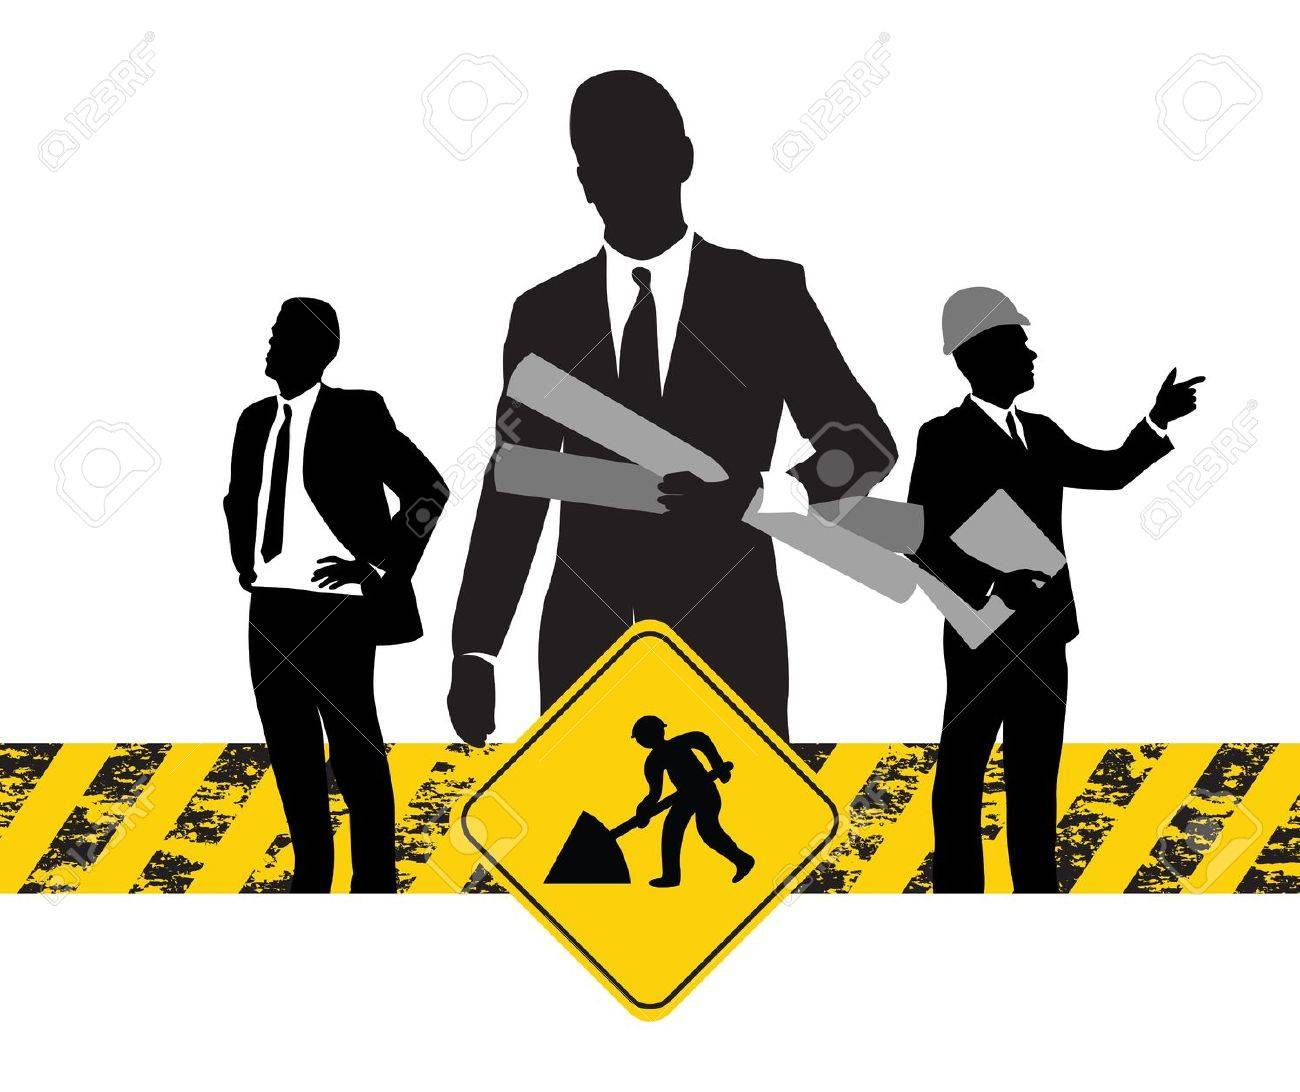 construction workers background - 9147161